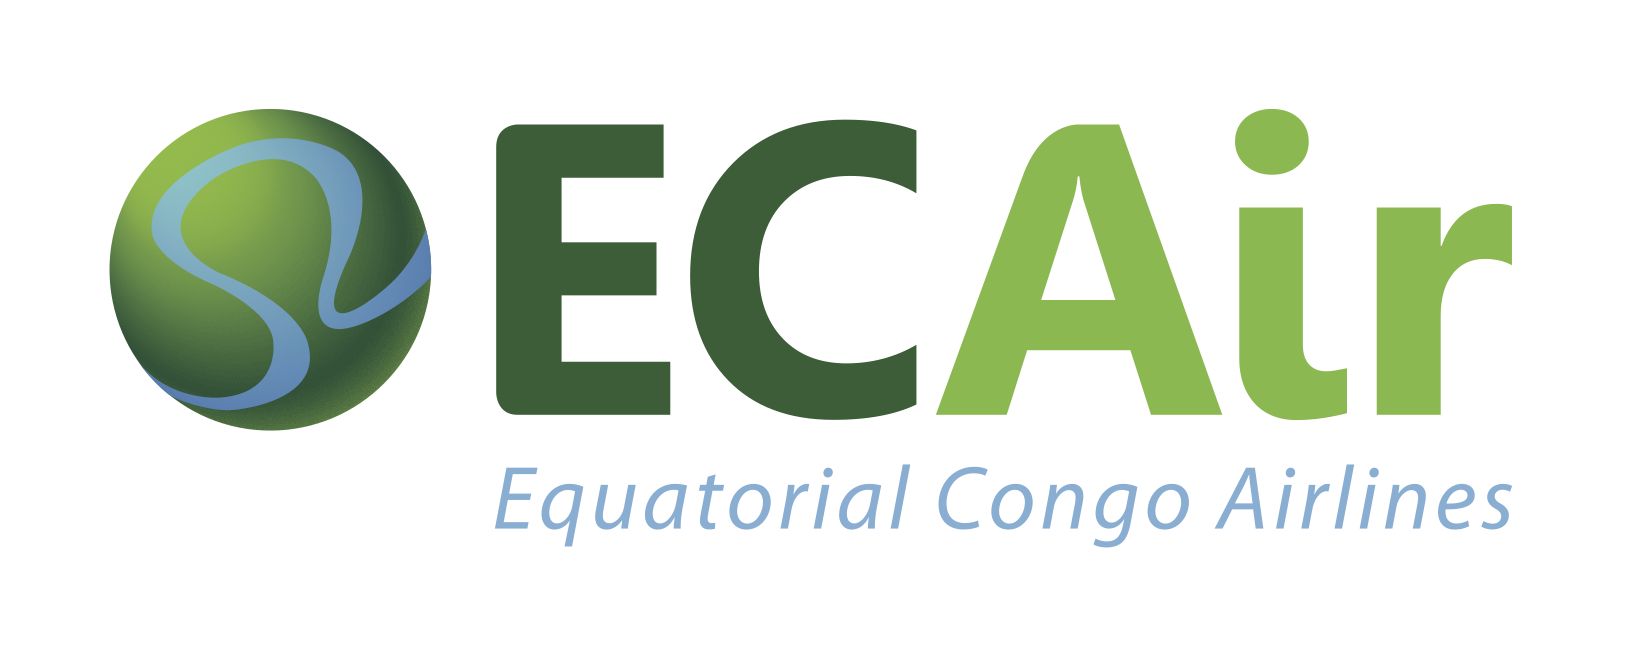 ECAir, Equatorial Congo Airlines, to inaugurate new route Brazzaville-Dakar via Bamako on Sunday, 22 March 2015